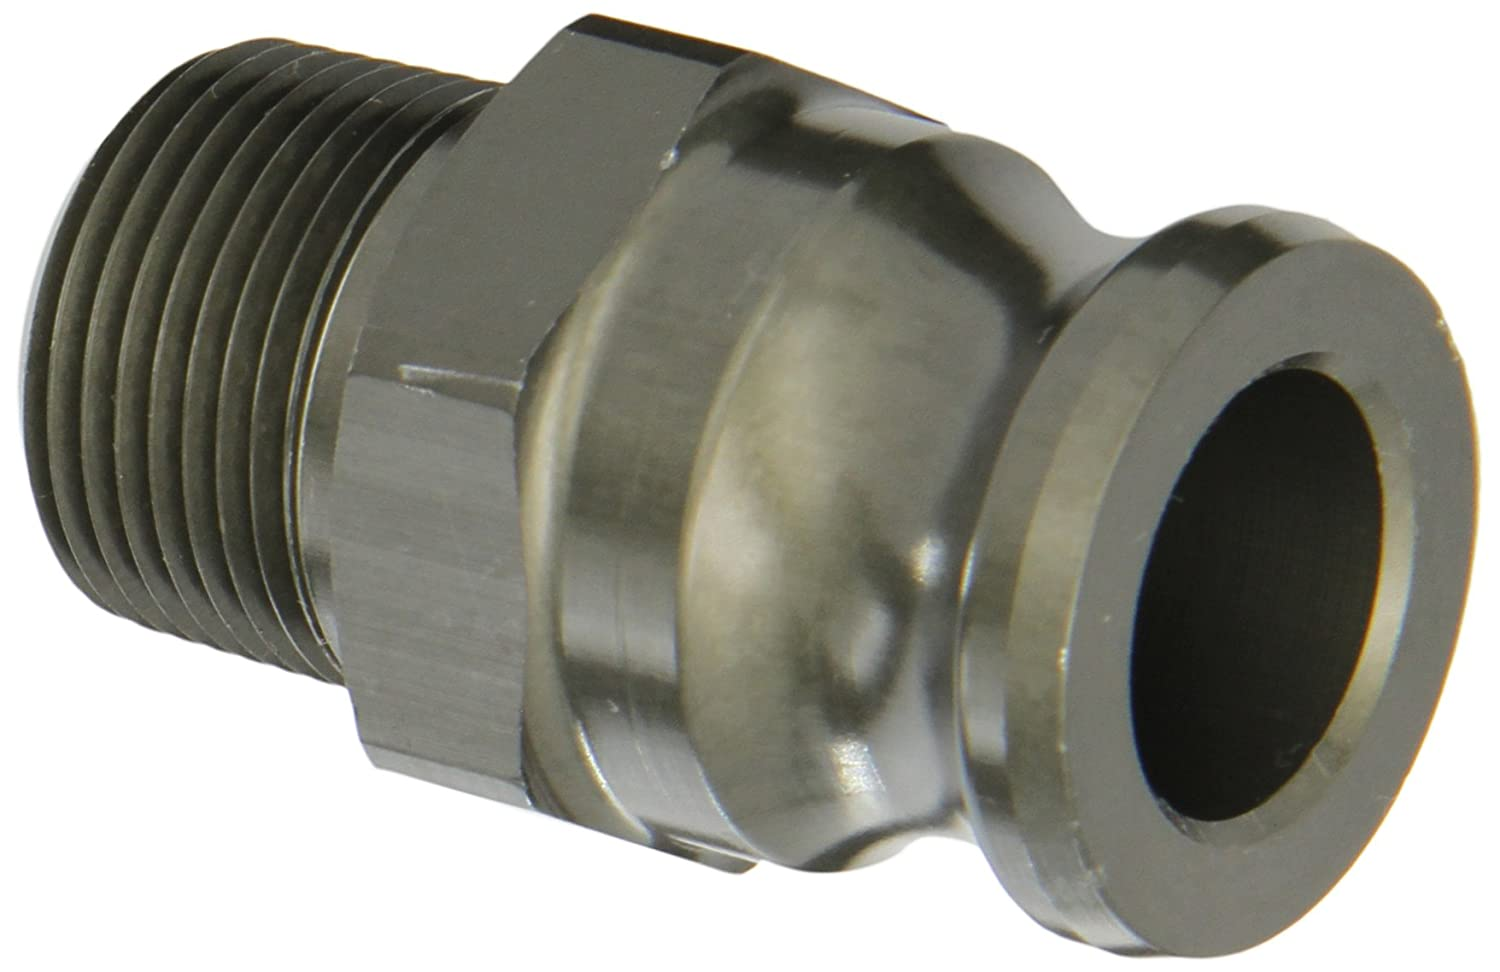 3//4 Adapter x NPT Male F-Adapter PT Coupling 1000607Basic Standard Series 07F Aluminum Cam and Groove Hose Fitting